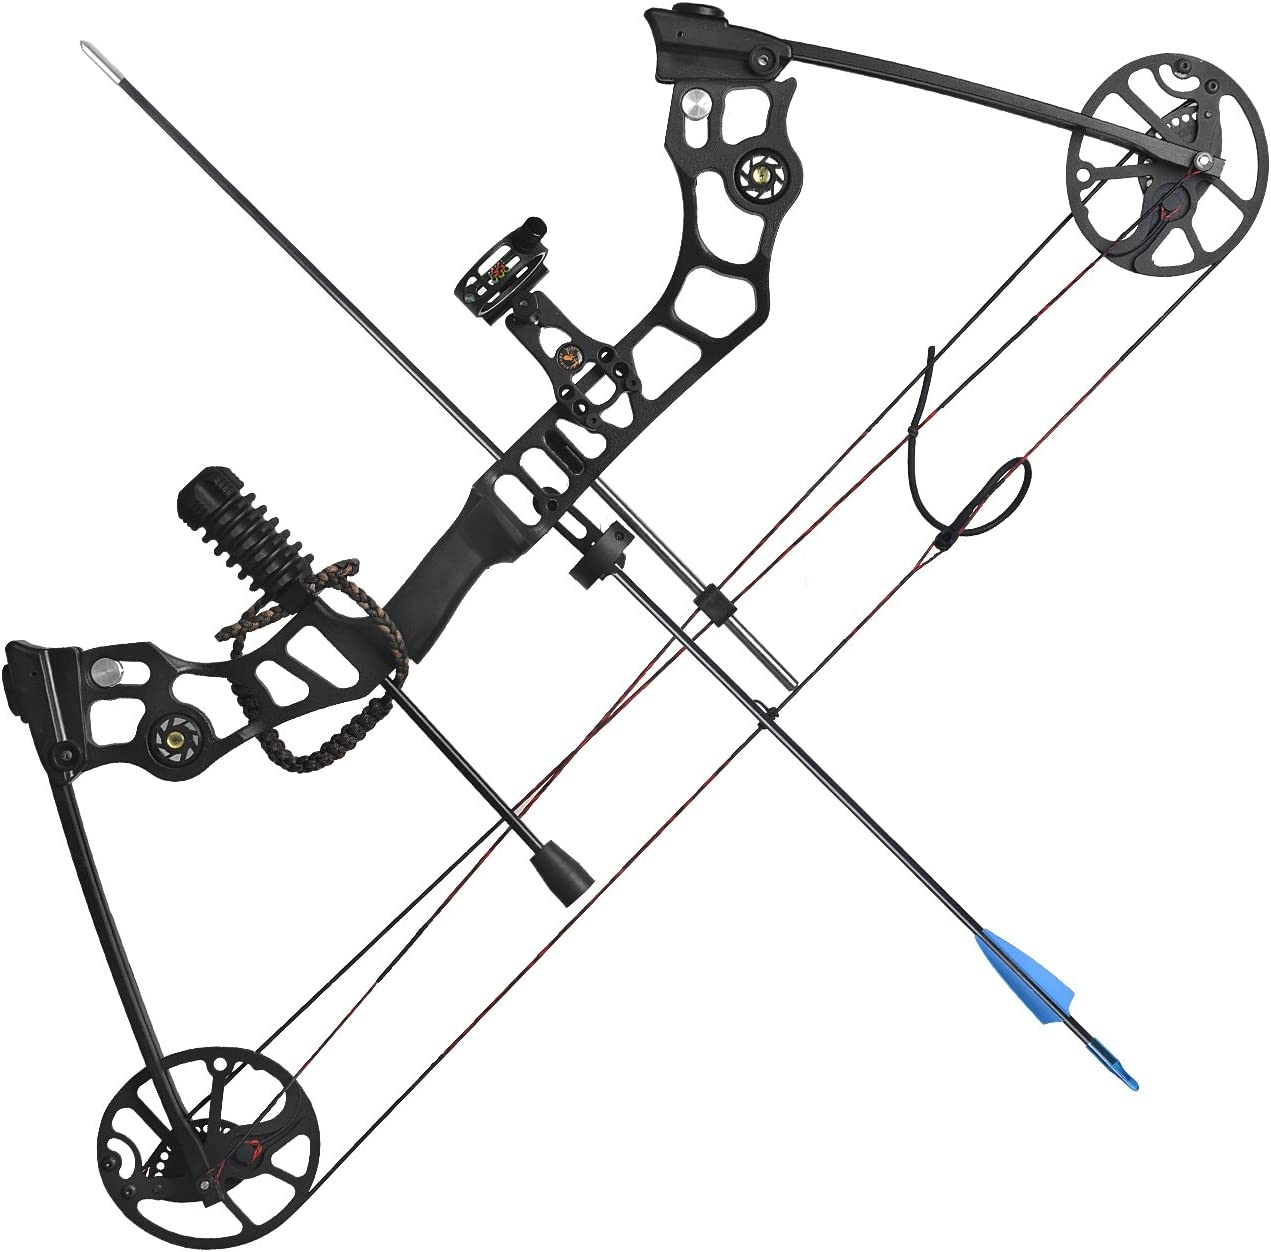 Demon Eight Compound Bows, Big Archery Hunting Equipment Compound Bows For  Adults Youth Sale(without arrow), Compound Bows - Amazon Canada